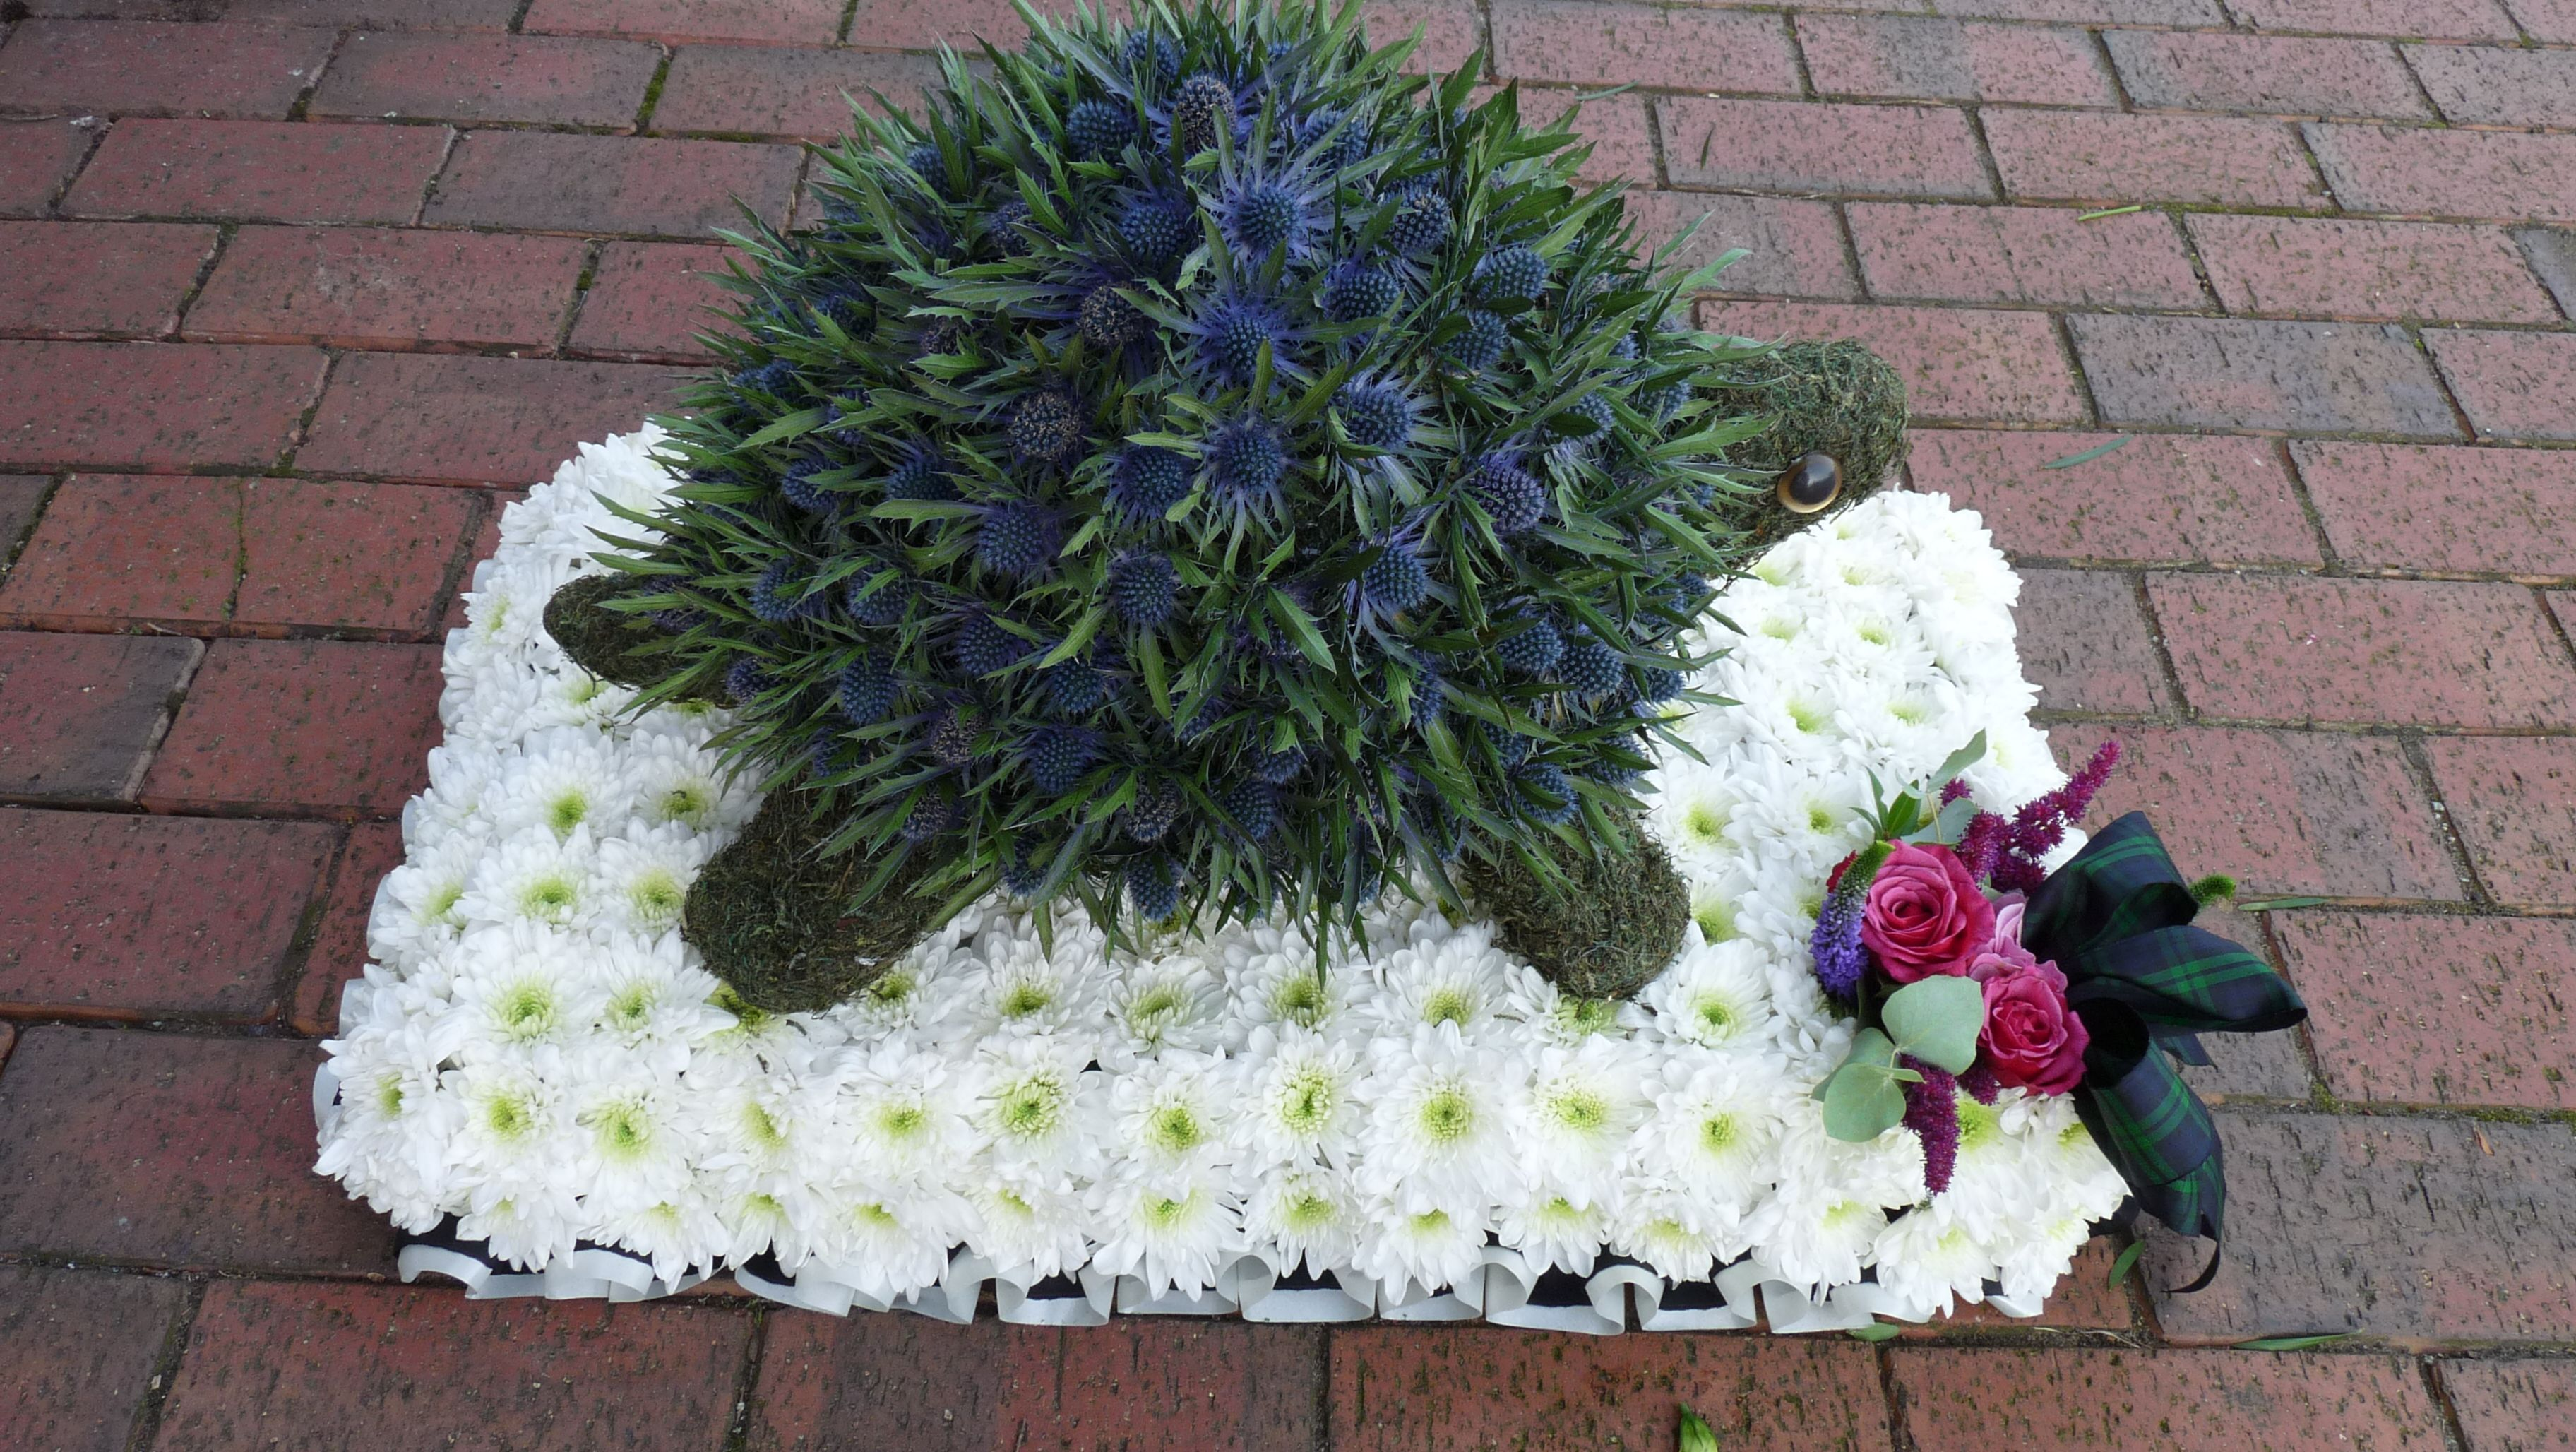 Bespoke funeral design made by the flower academy inc ltd bespoke funeral design made by the flower academy inc ltd izmirmasajfo